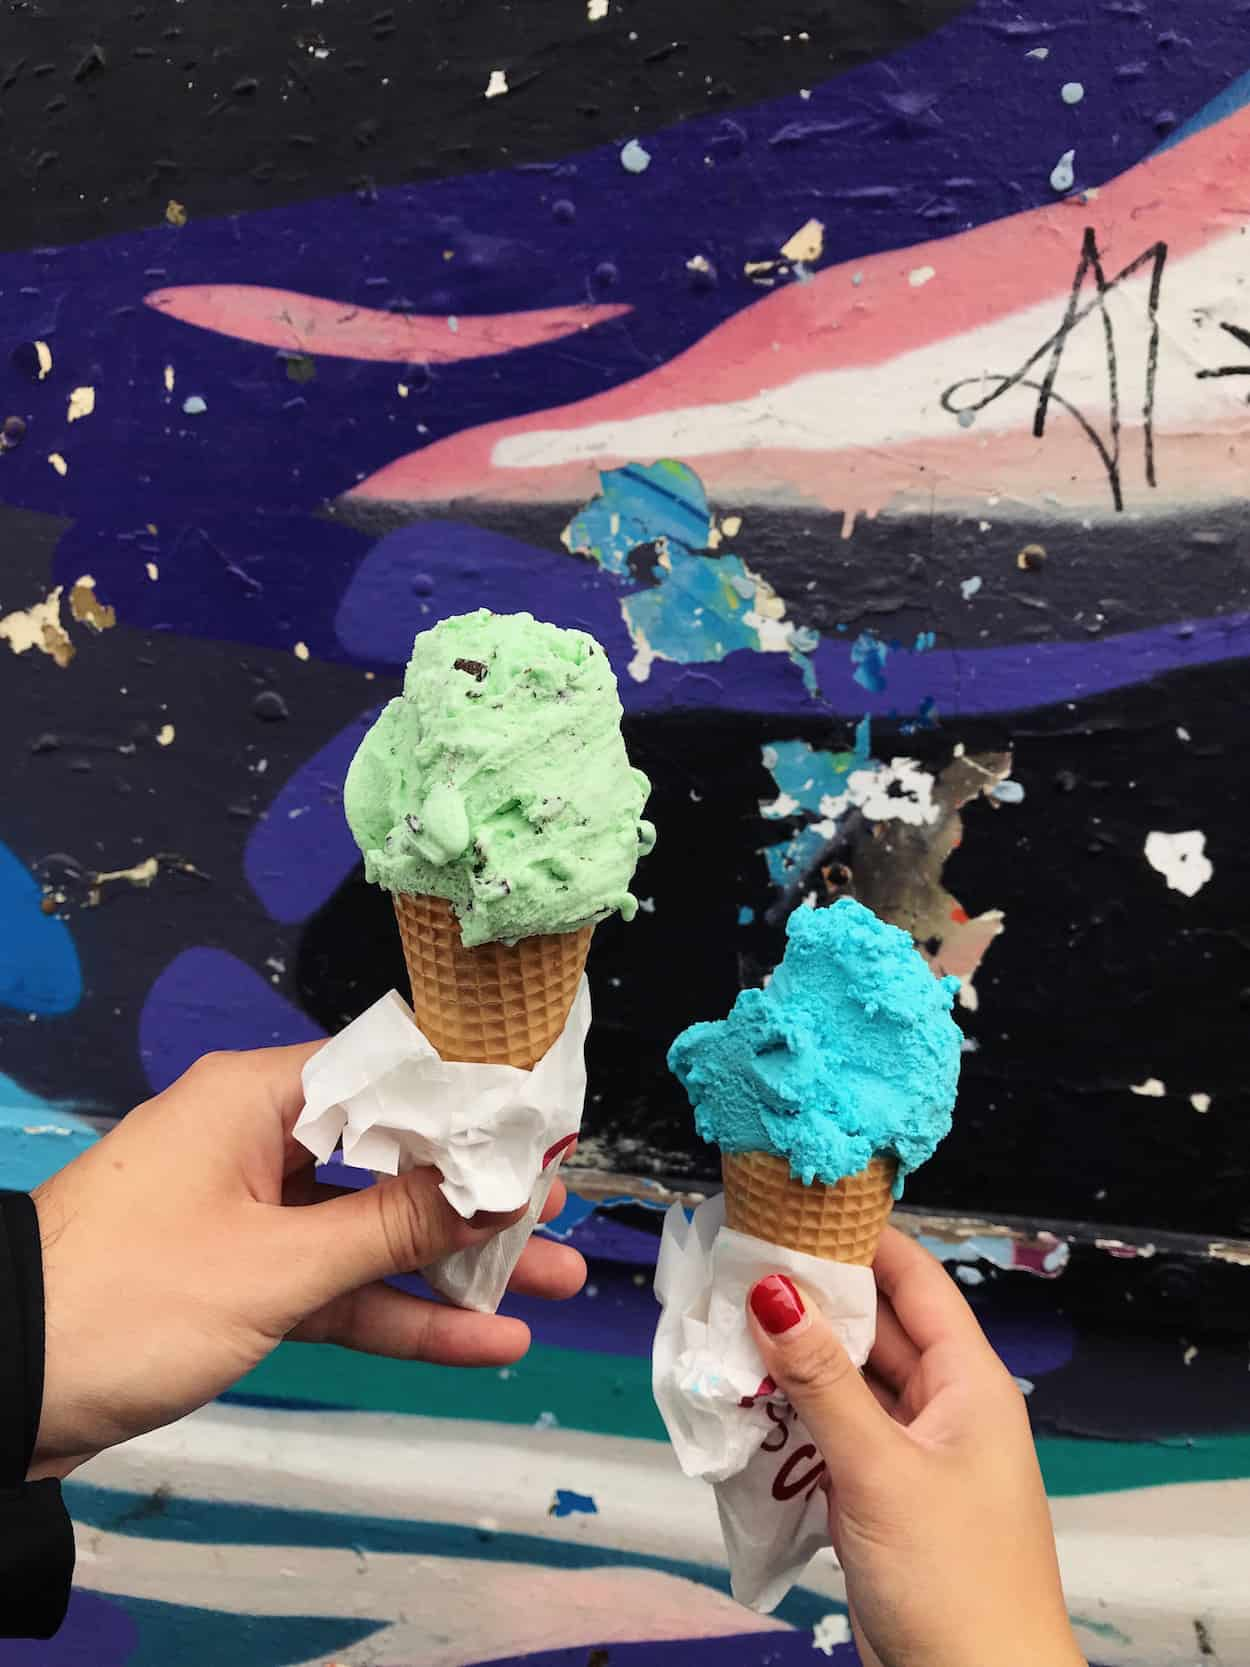 Best ice cream spots in Ireland | top places to get gelato in Dublin, Galway, Dingle | where to eat ice cream in Ireland | Diary of a Toronto Girl